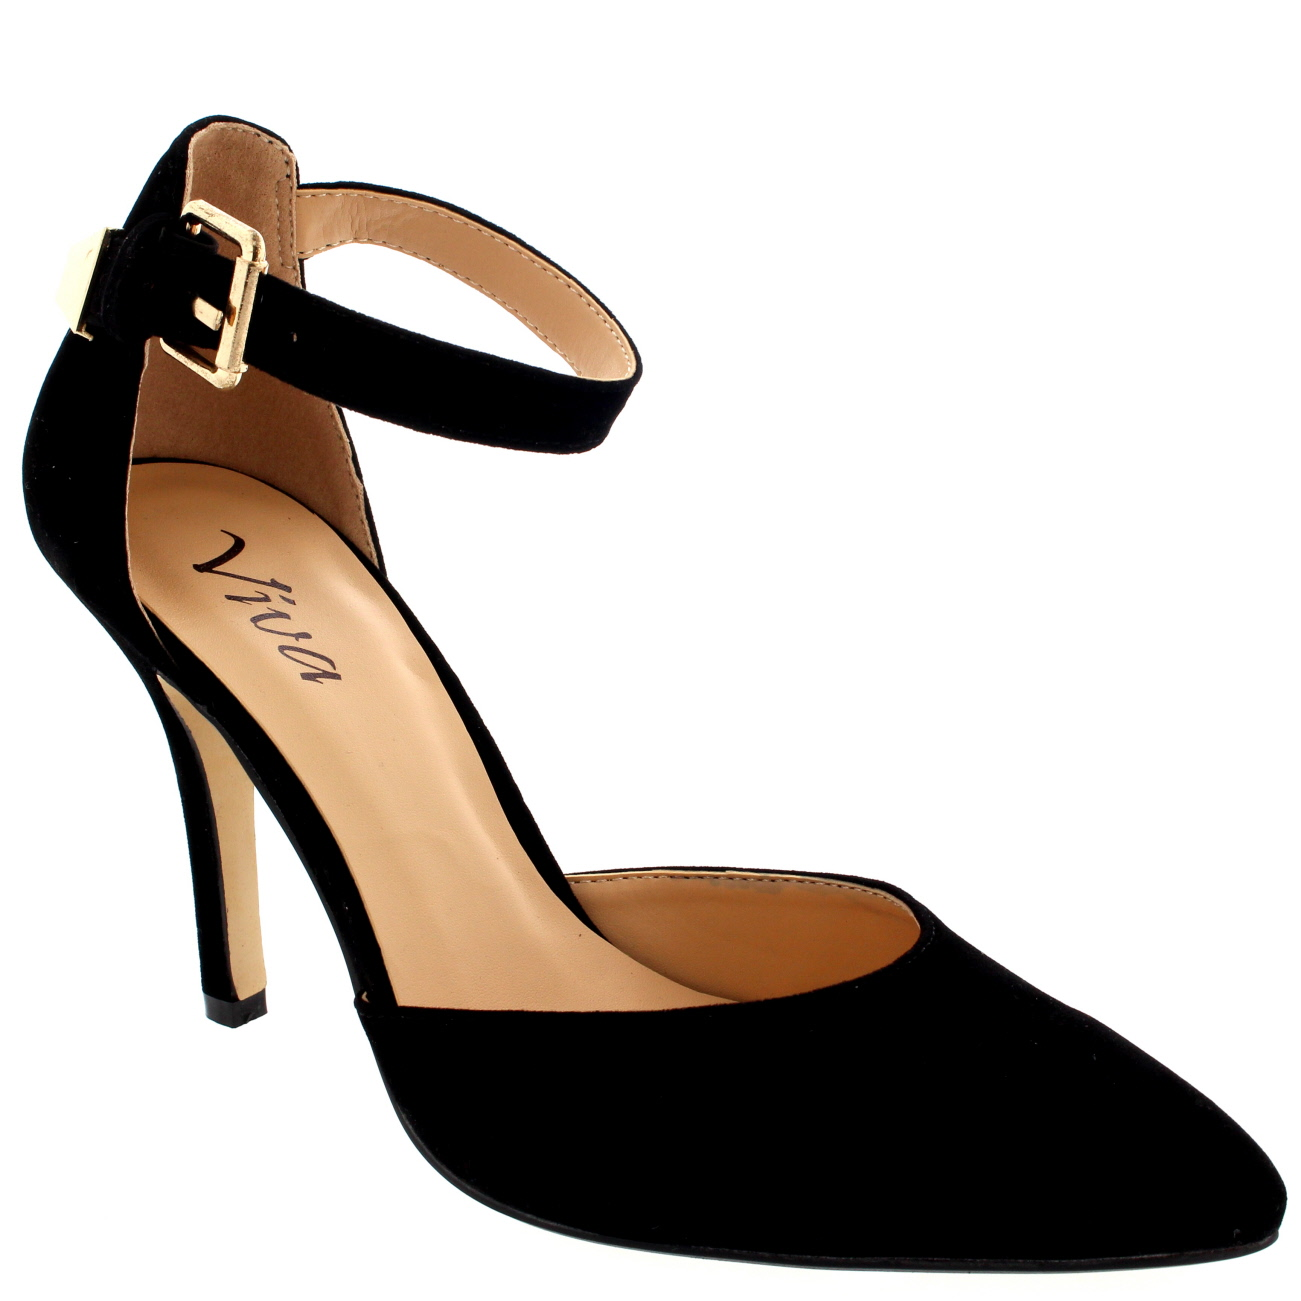 Womens Ankle Strap Low Mid Heel Office Work Court Shoes Pointed.